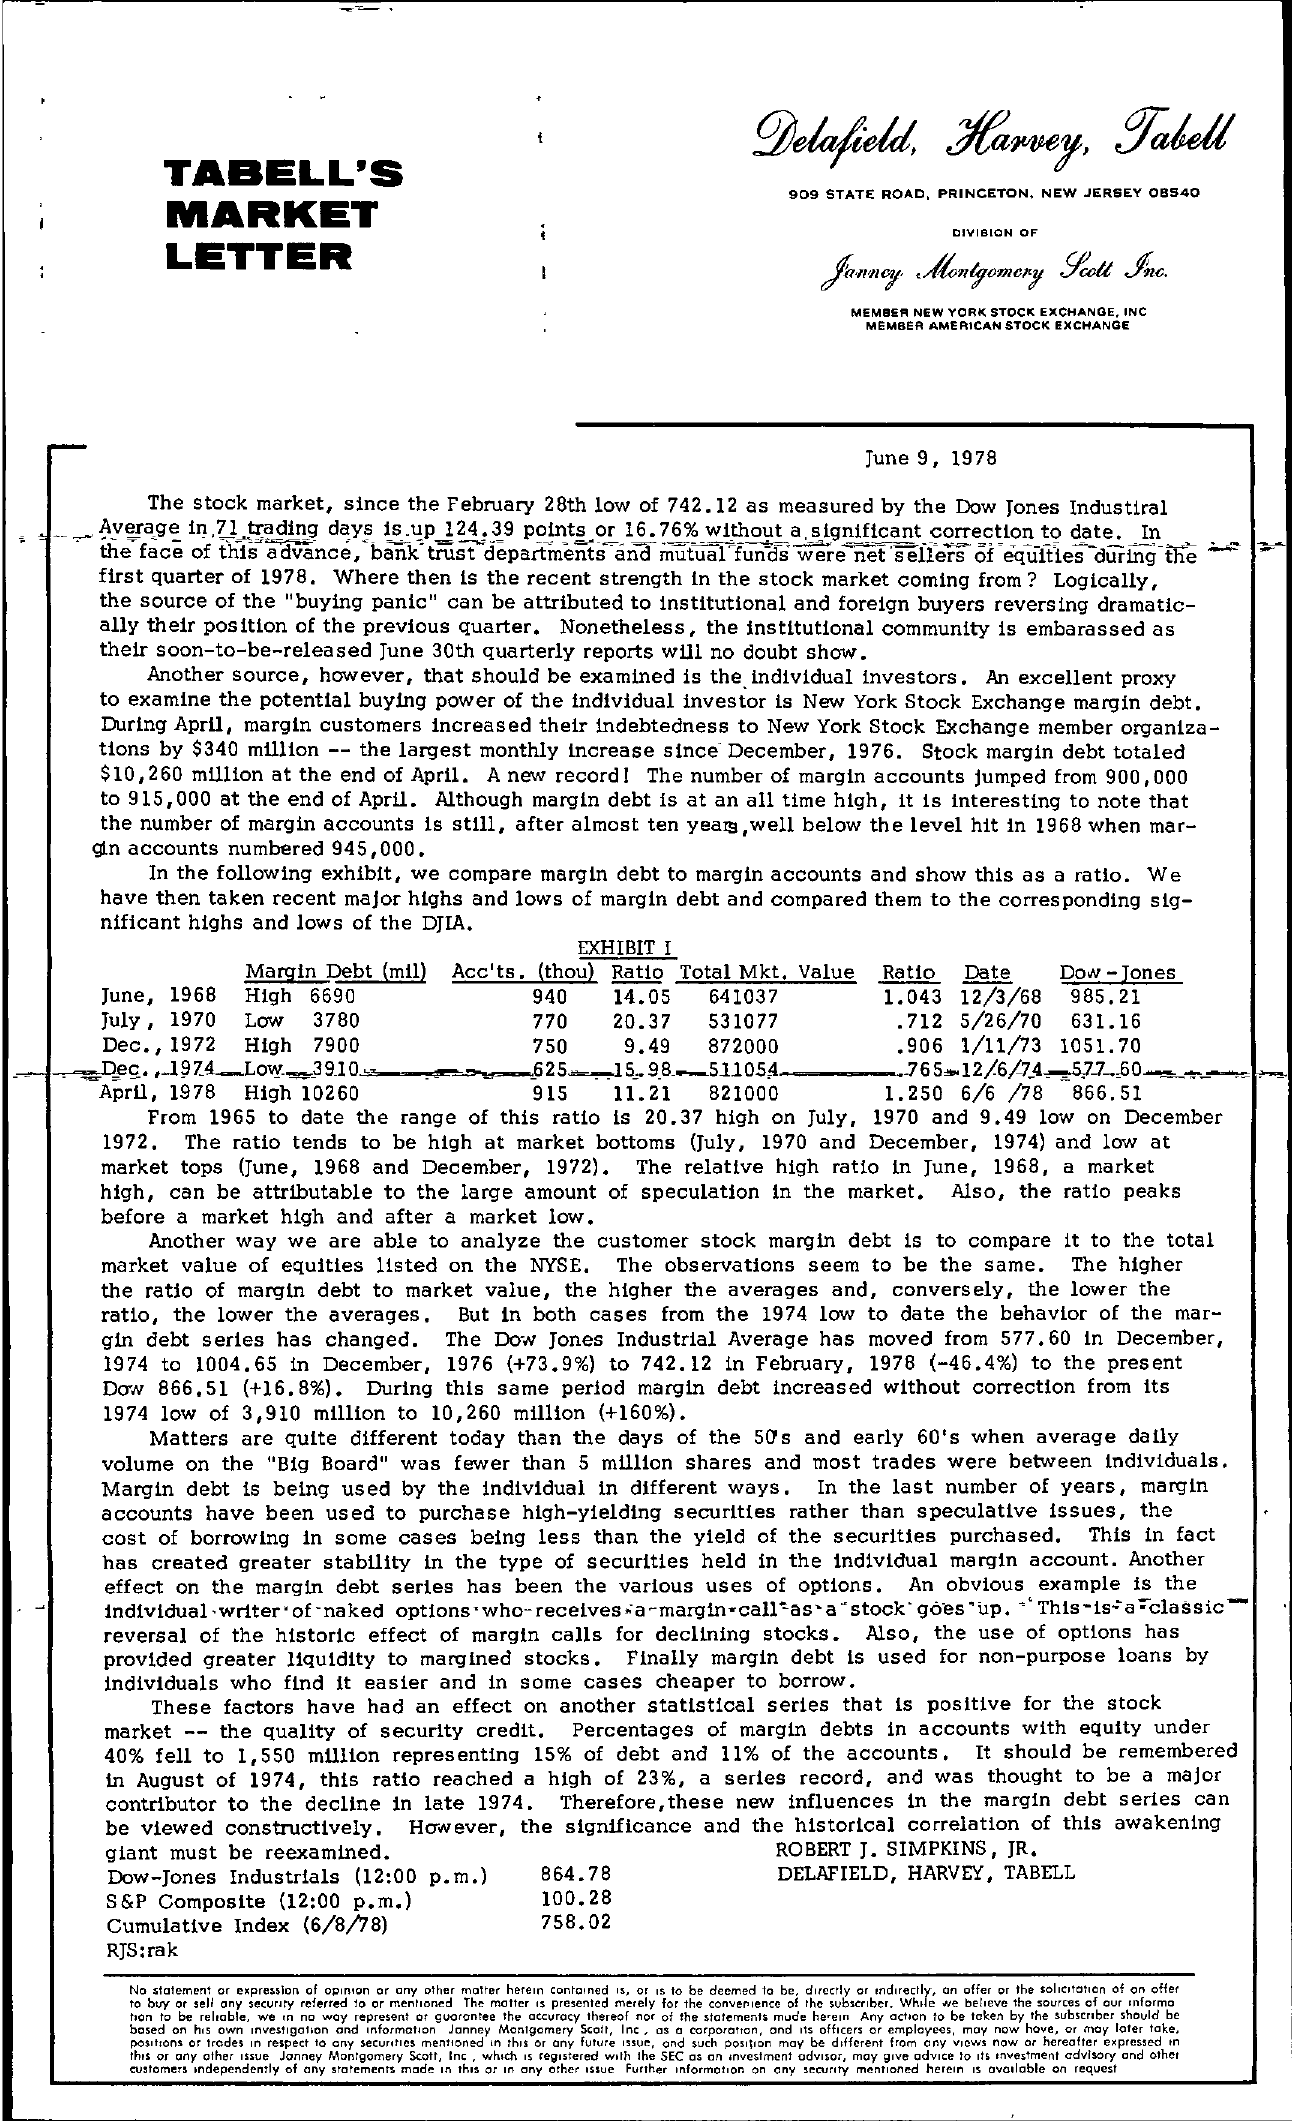 Tabell's Market Letter - June 09, 1978 page 1